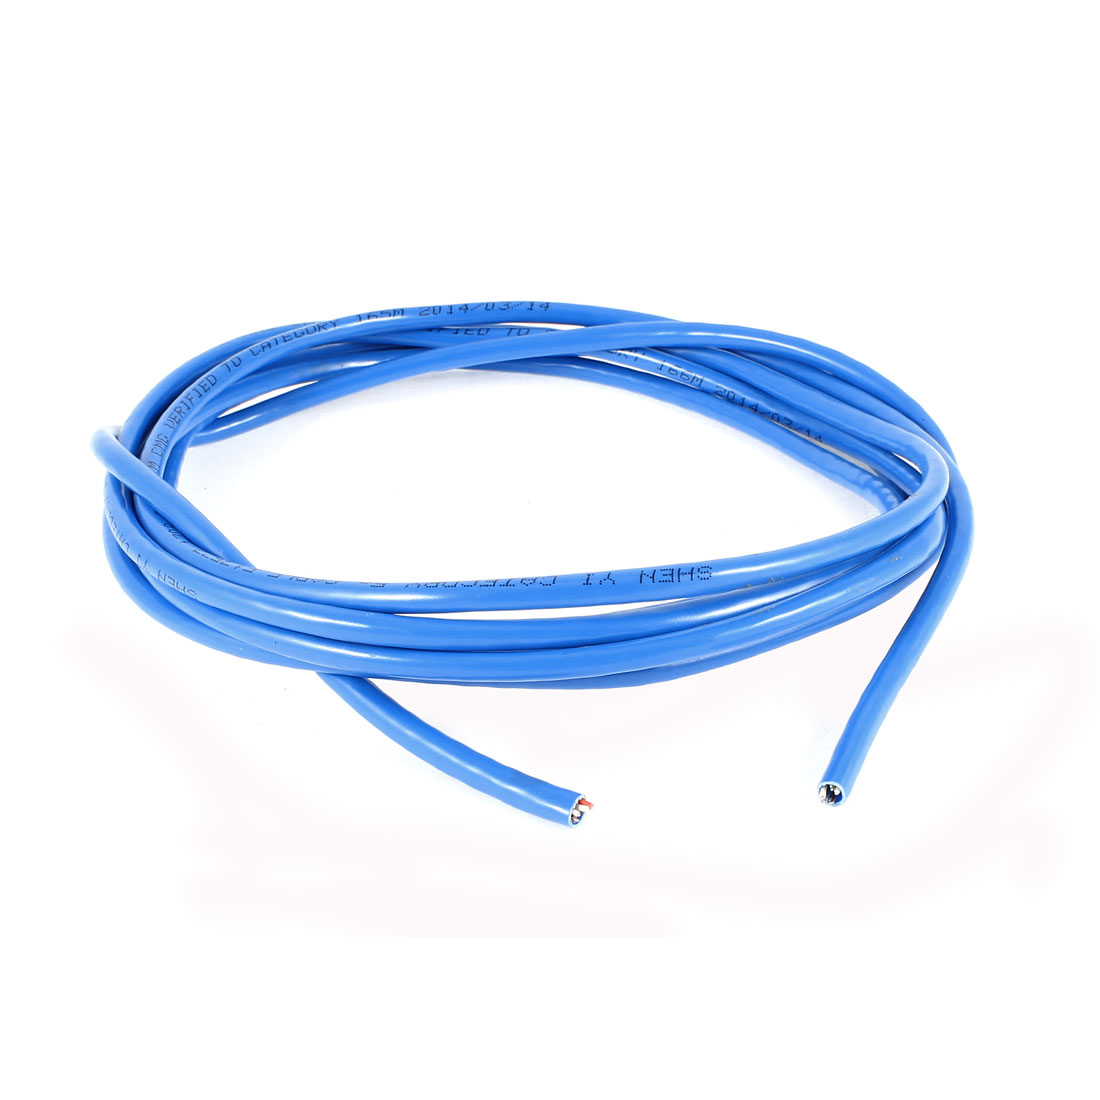 Cat5e Cable UTP Wire Ethernet LAN Network Cat5 Cord Blue 10Ft 3 meters